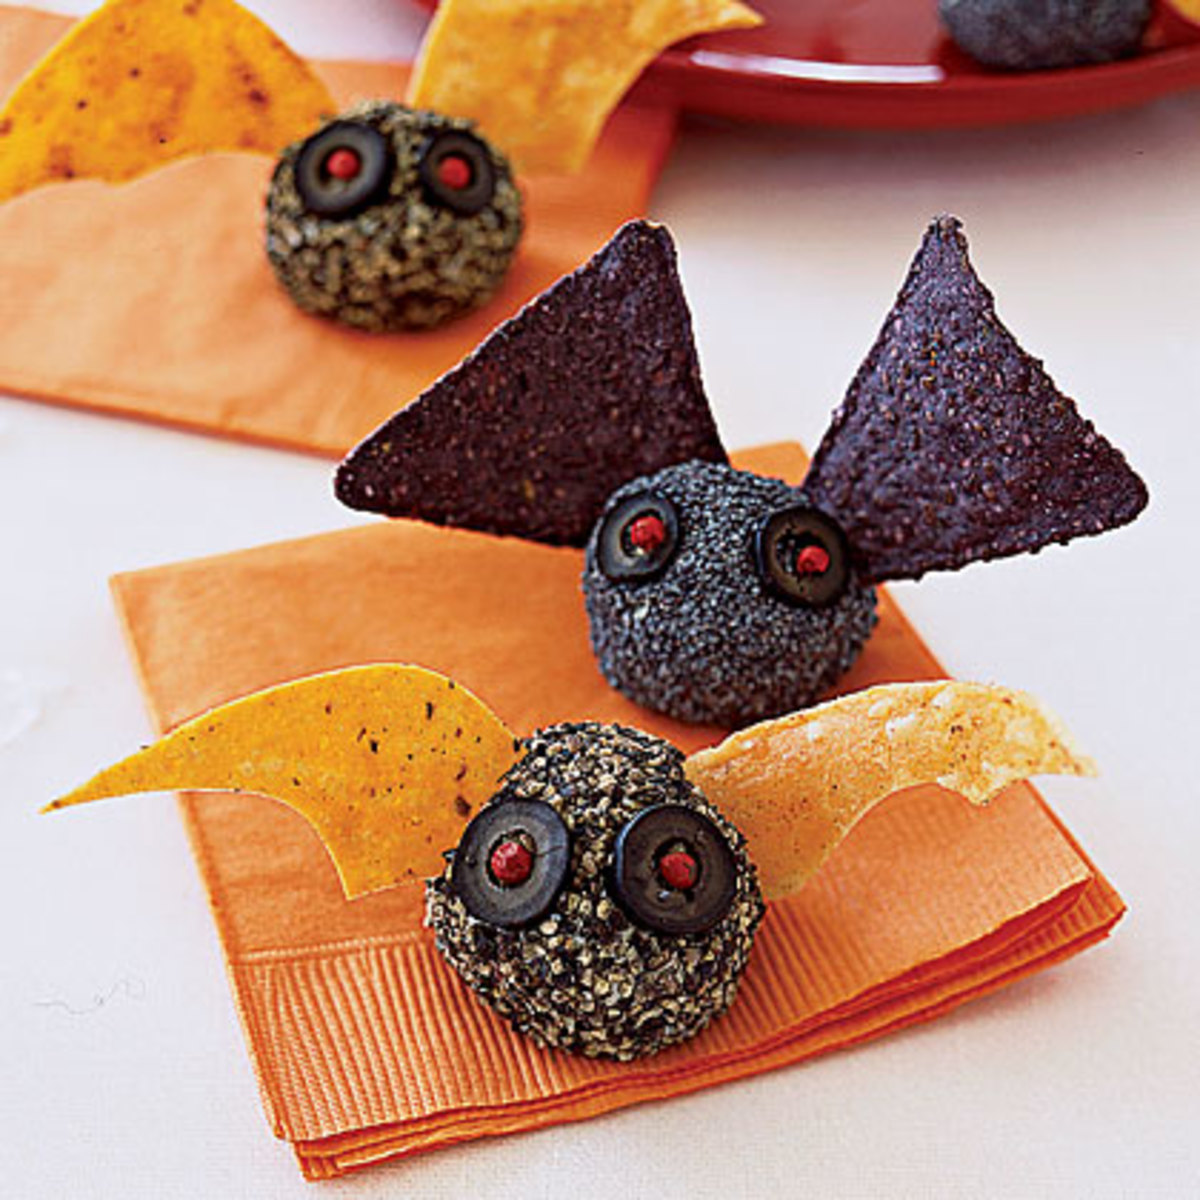 These Bat Bites will fly off any Halloween party tray!